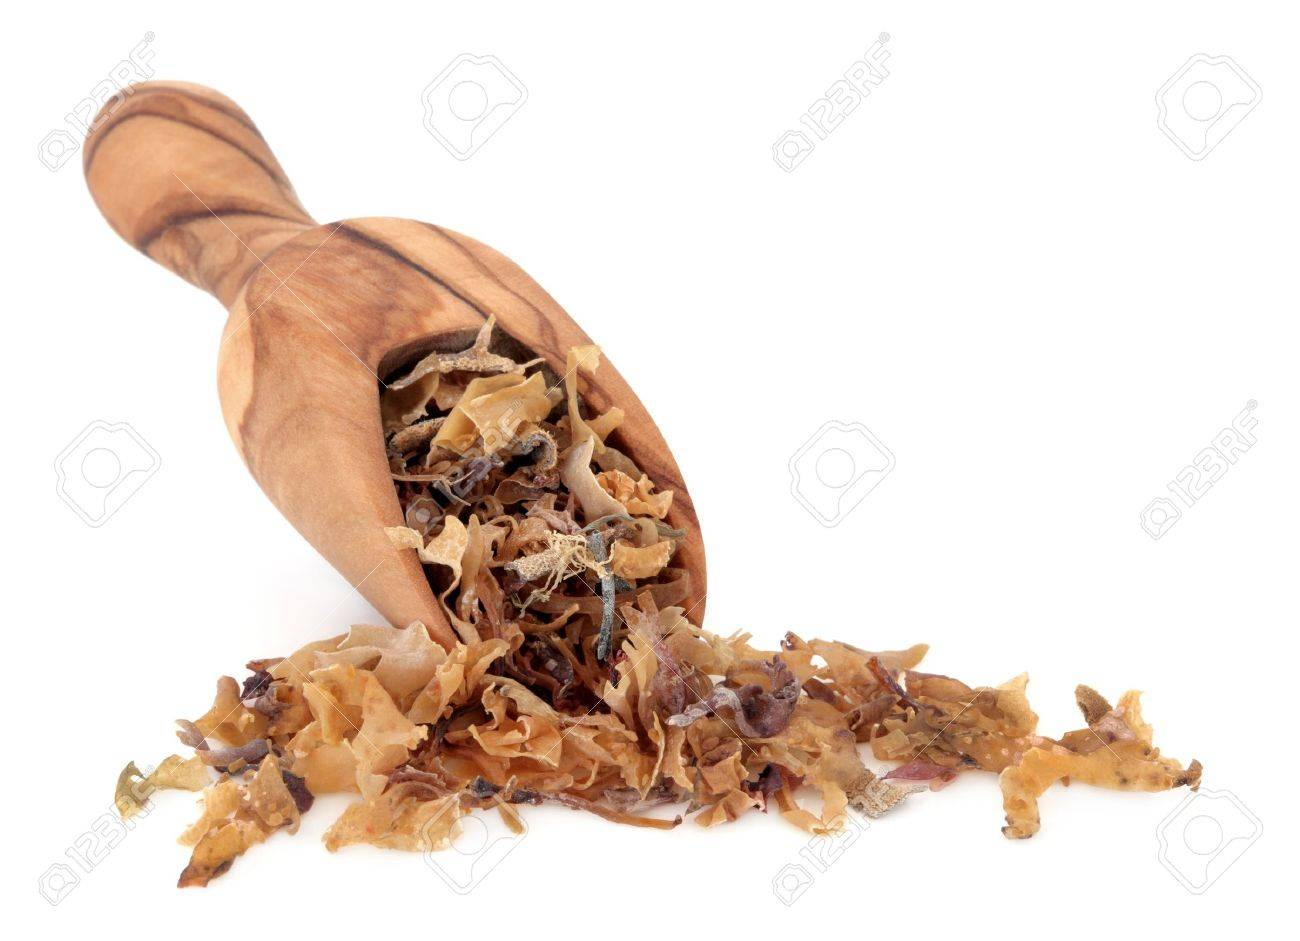 Irish moss superfood in an olive wood scoop over white background  Used as an alternative medicine and also as a good luck charm Stock Photo - 16244187